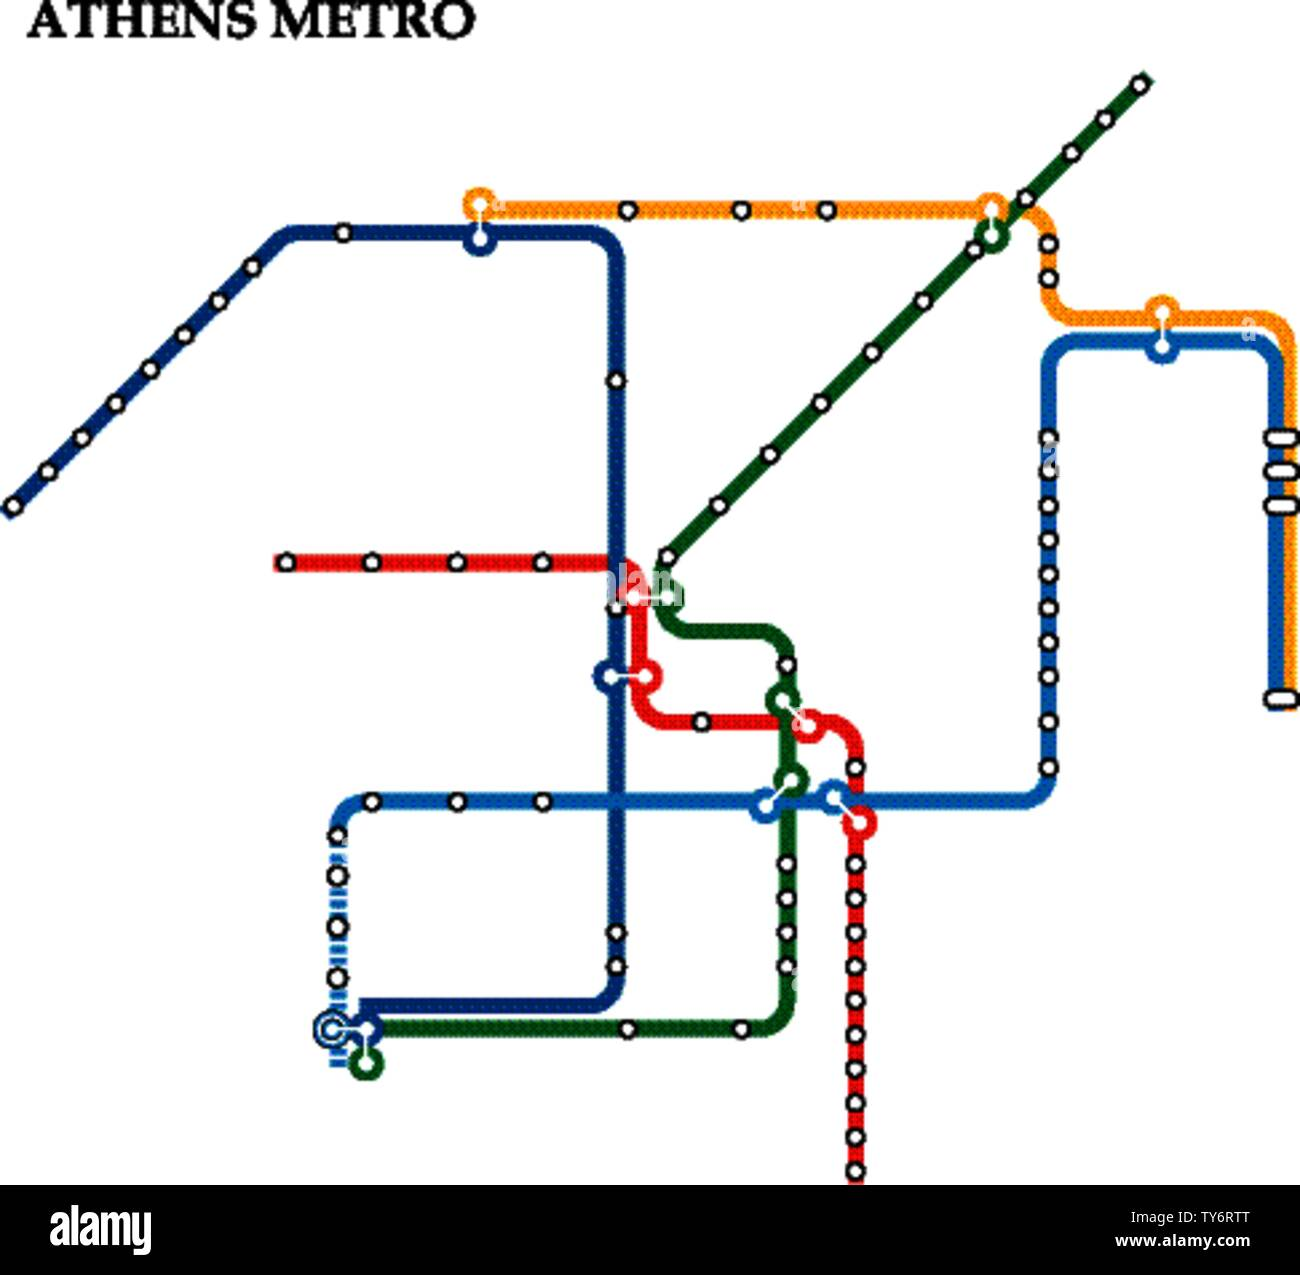 Subway Map Athens Greece.Athens Train Underground Subway Metro Stock Photos Athens Train